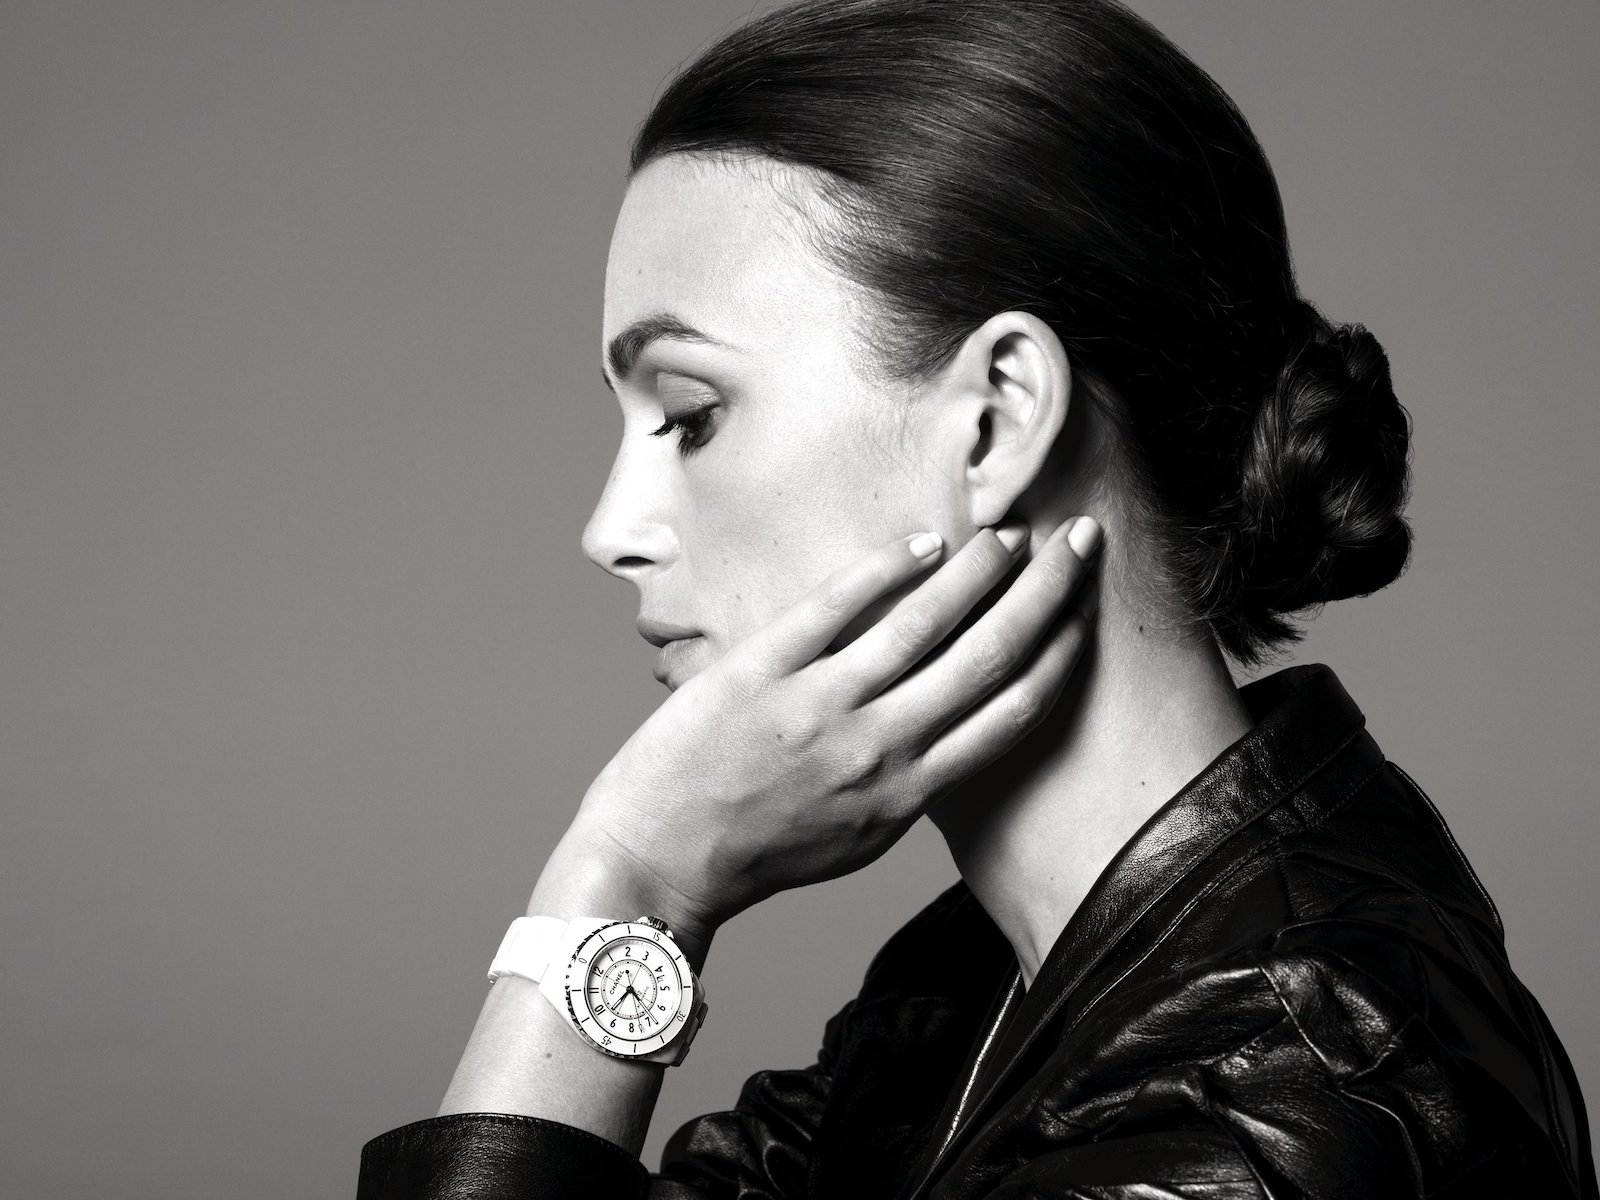 J12 It's all about seconds - Keira Knightley